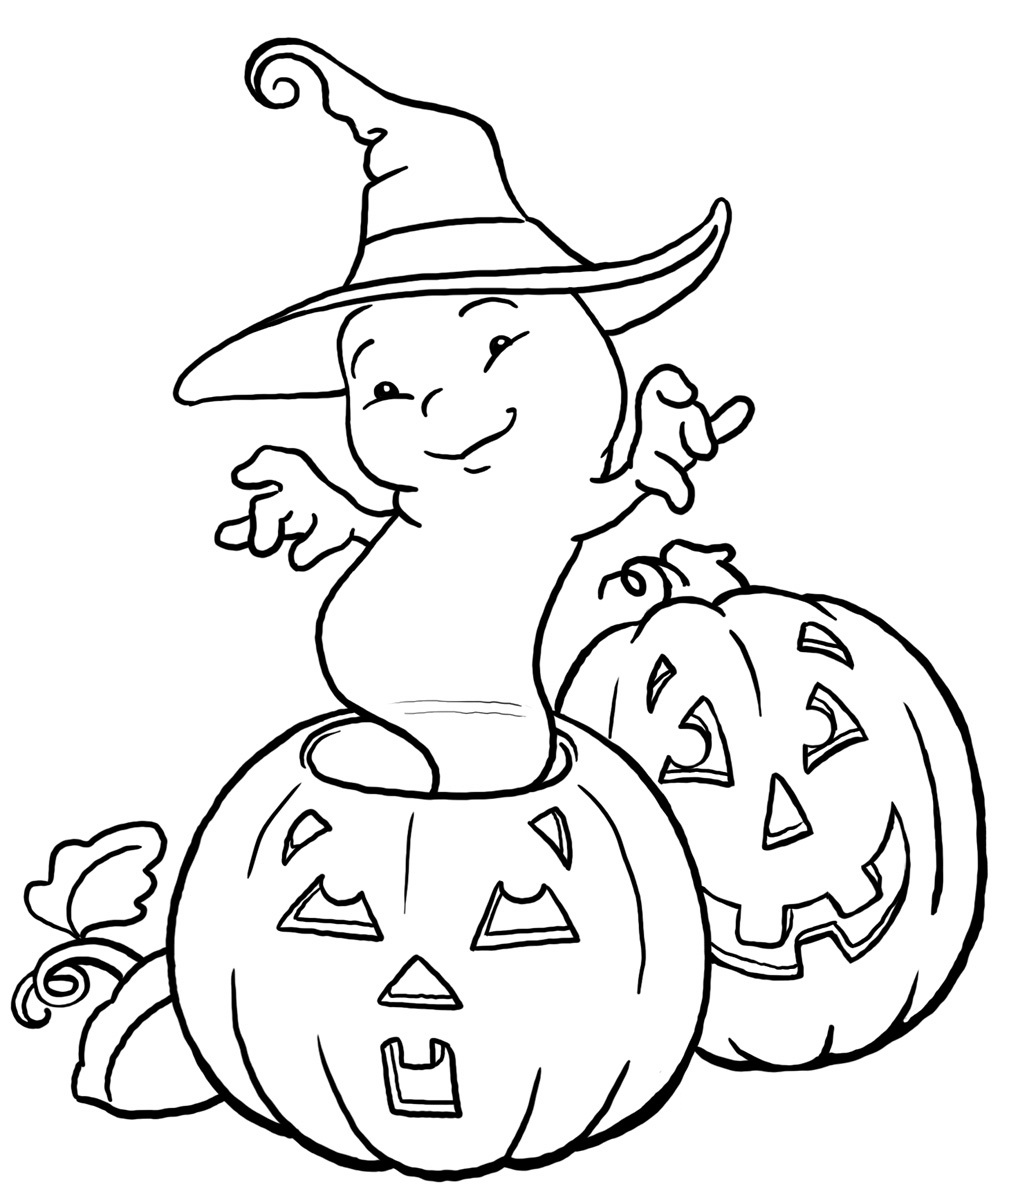 Free printable ghost coloring pages for kids for Coloring pages for halloween free printable